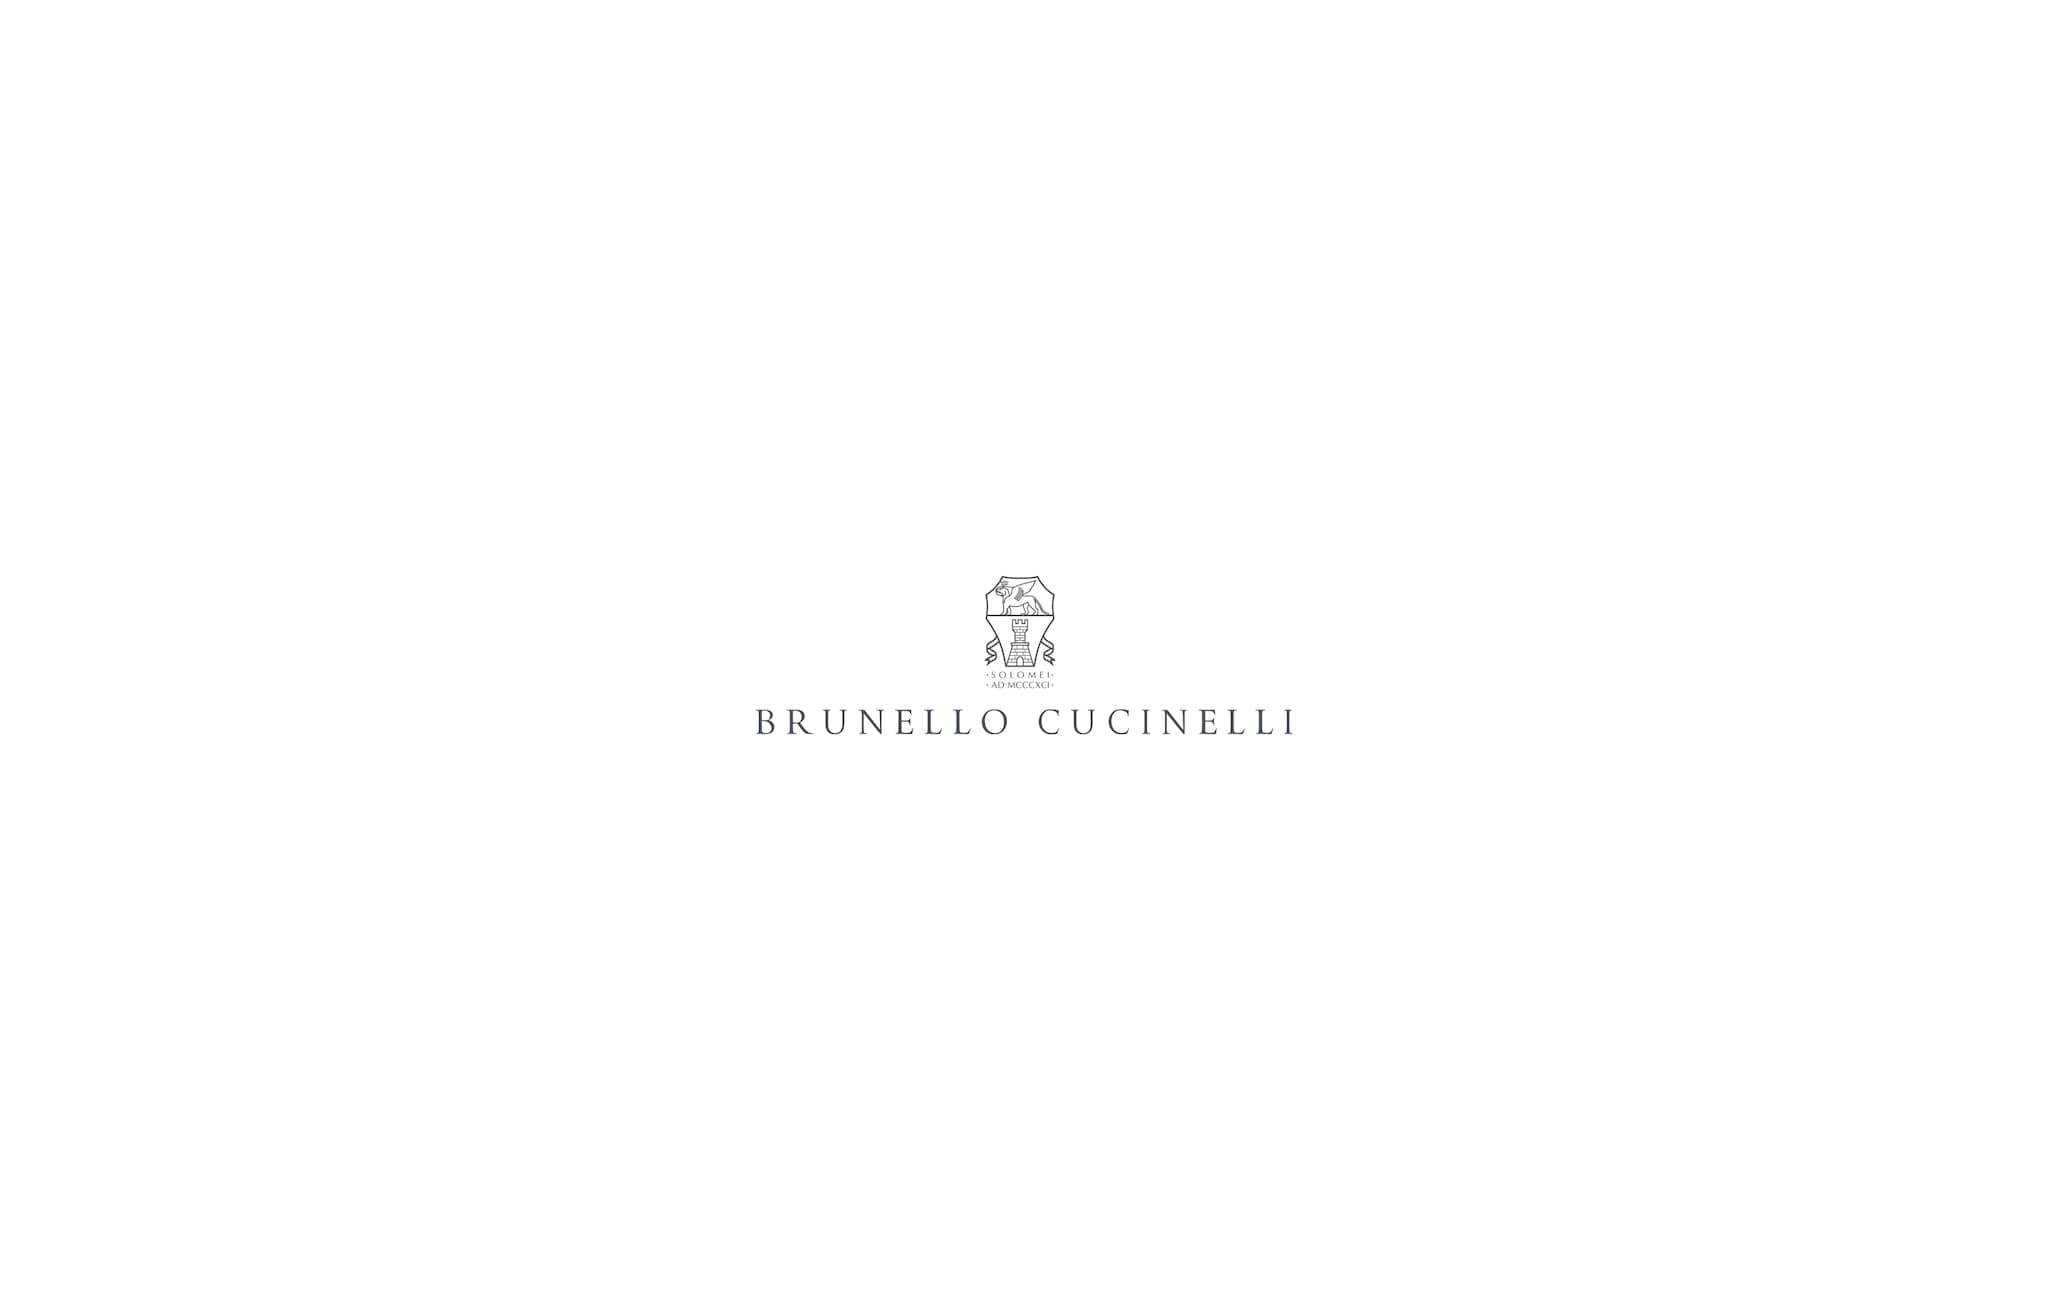 211HOUTFIT23 null null - Brunello Cucinelli